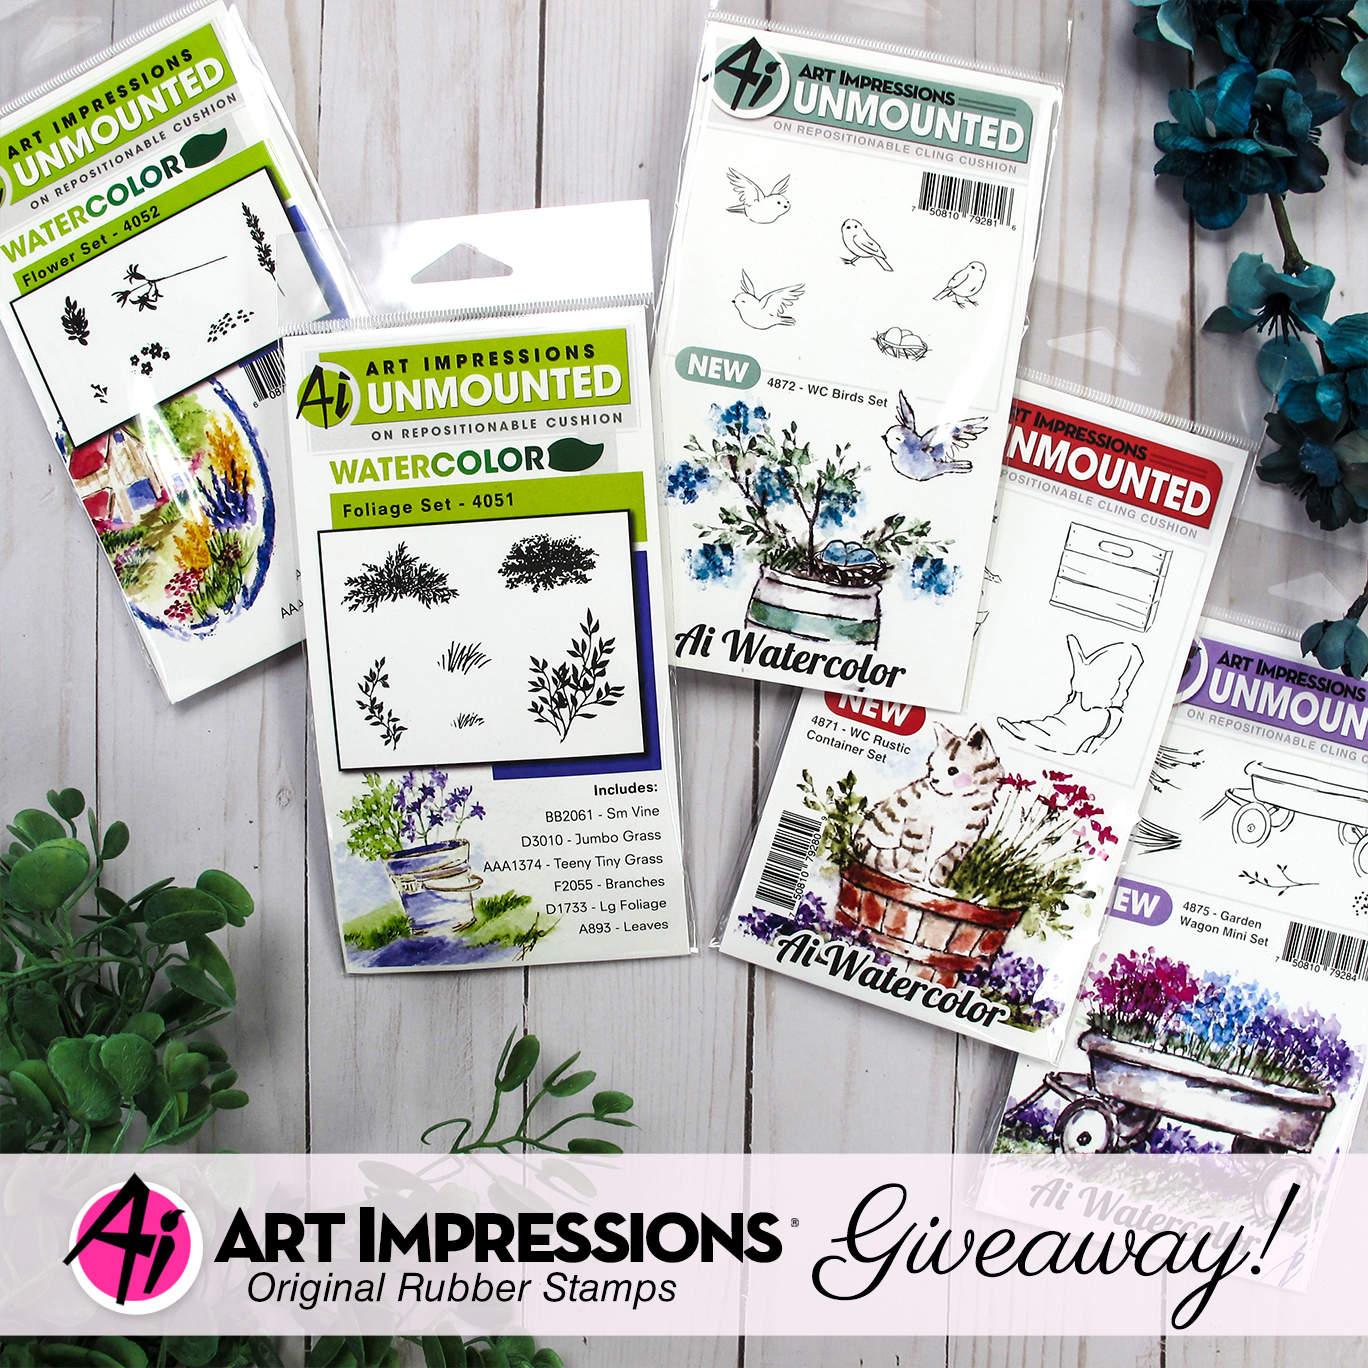 Art Impressions Prize Package for 12 Days of Giving | Creative Scrapbooker Magazine